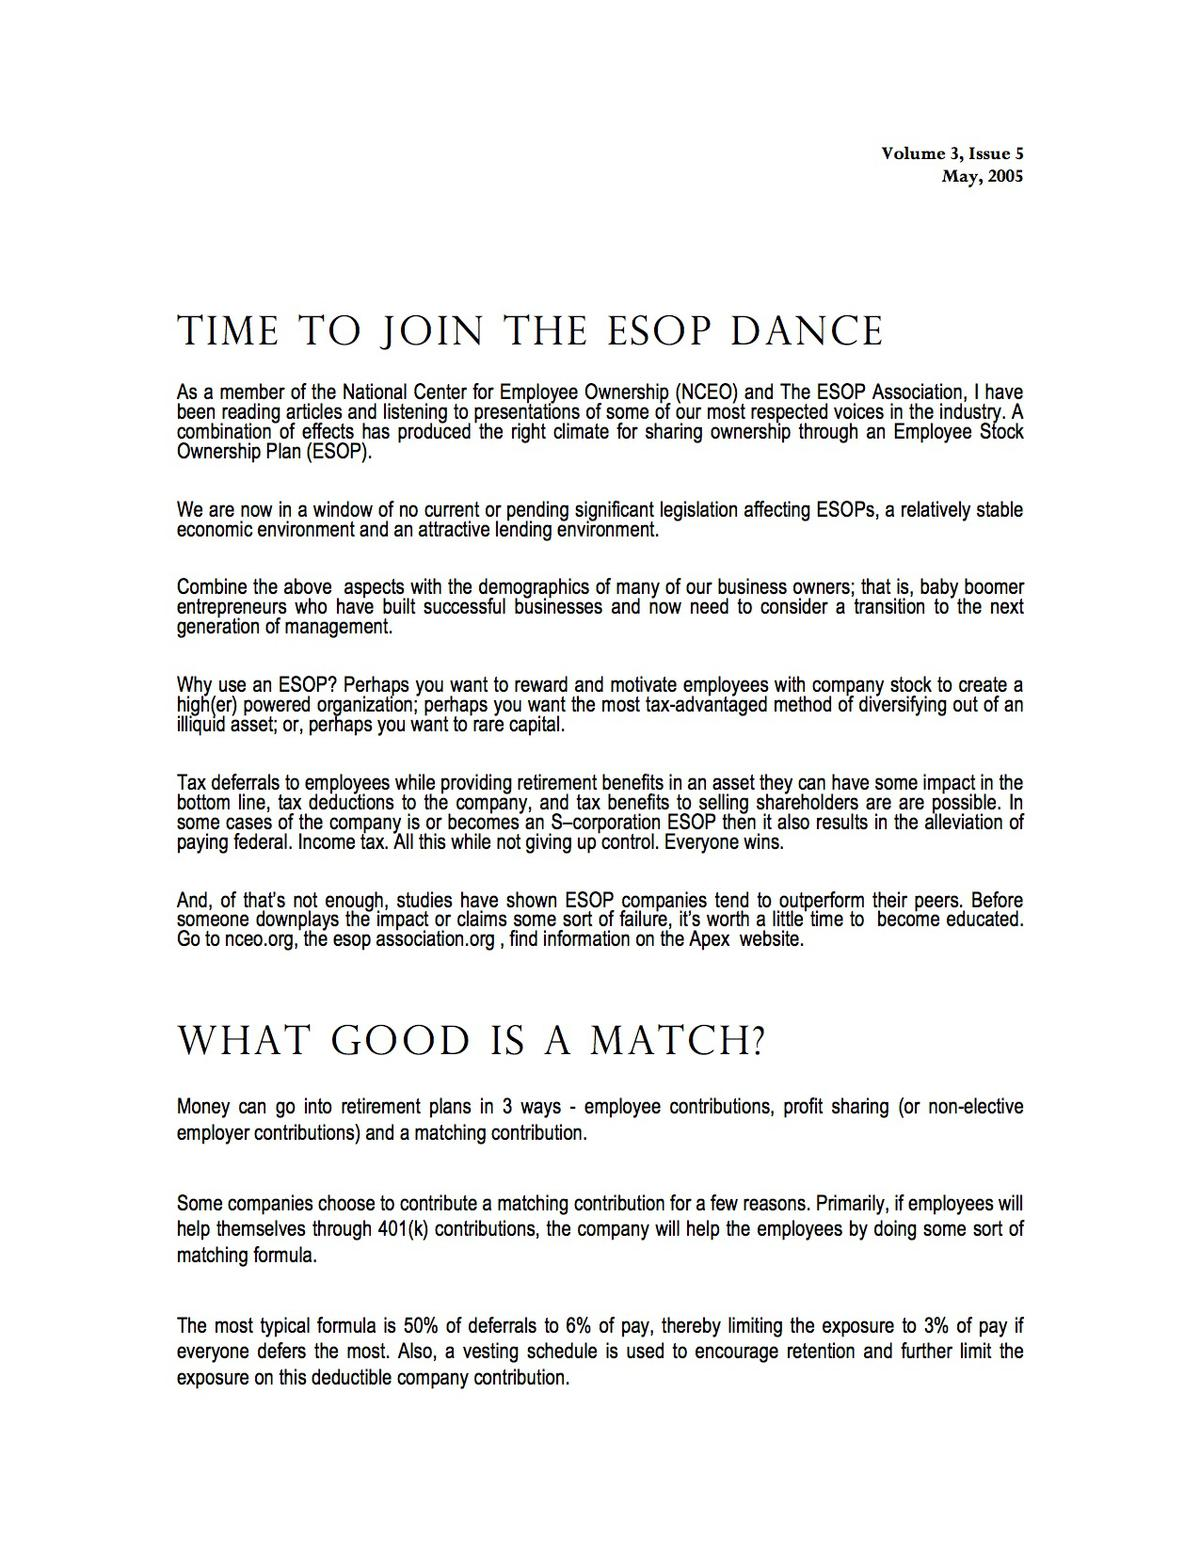 Time To Join The ESOP Dance